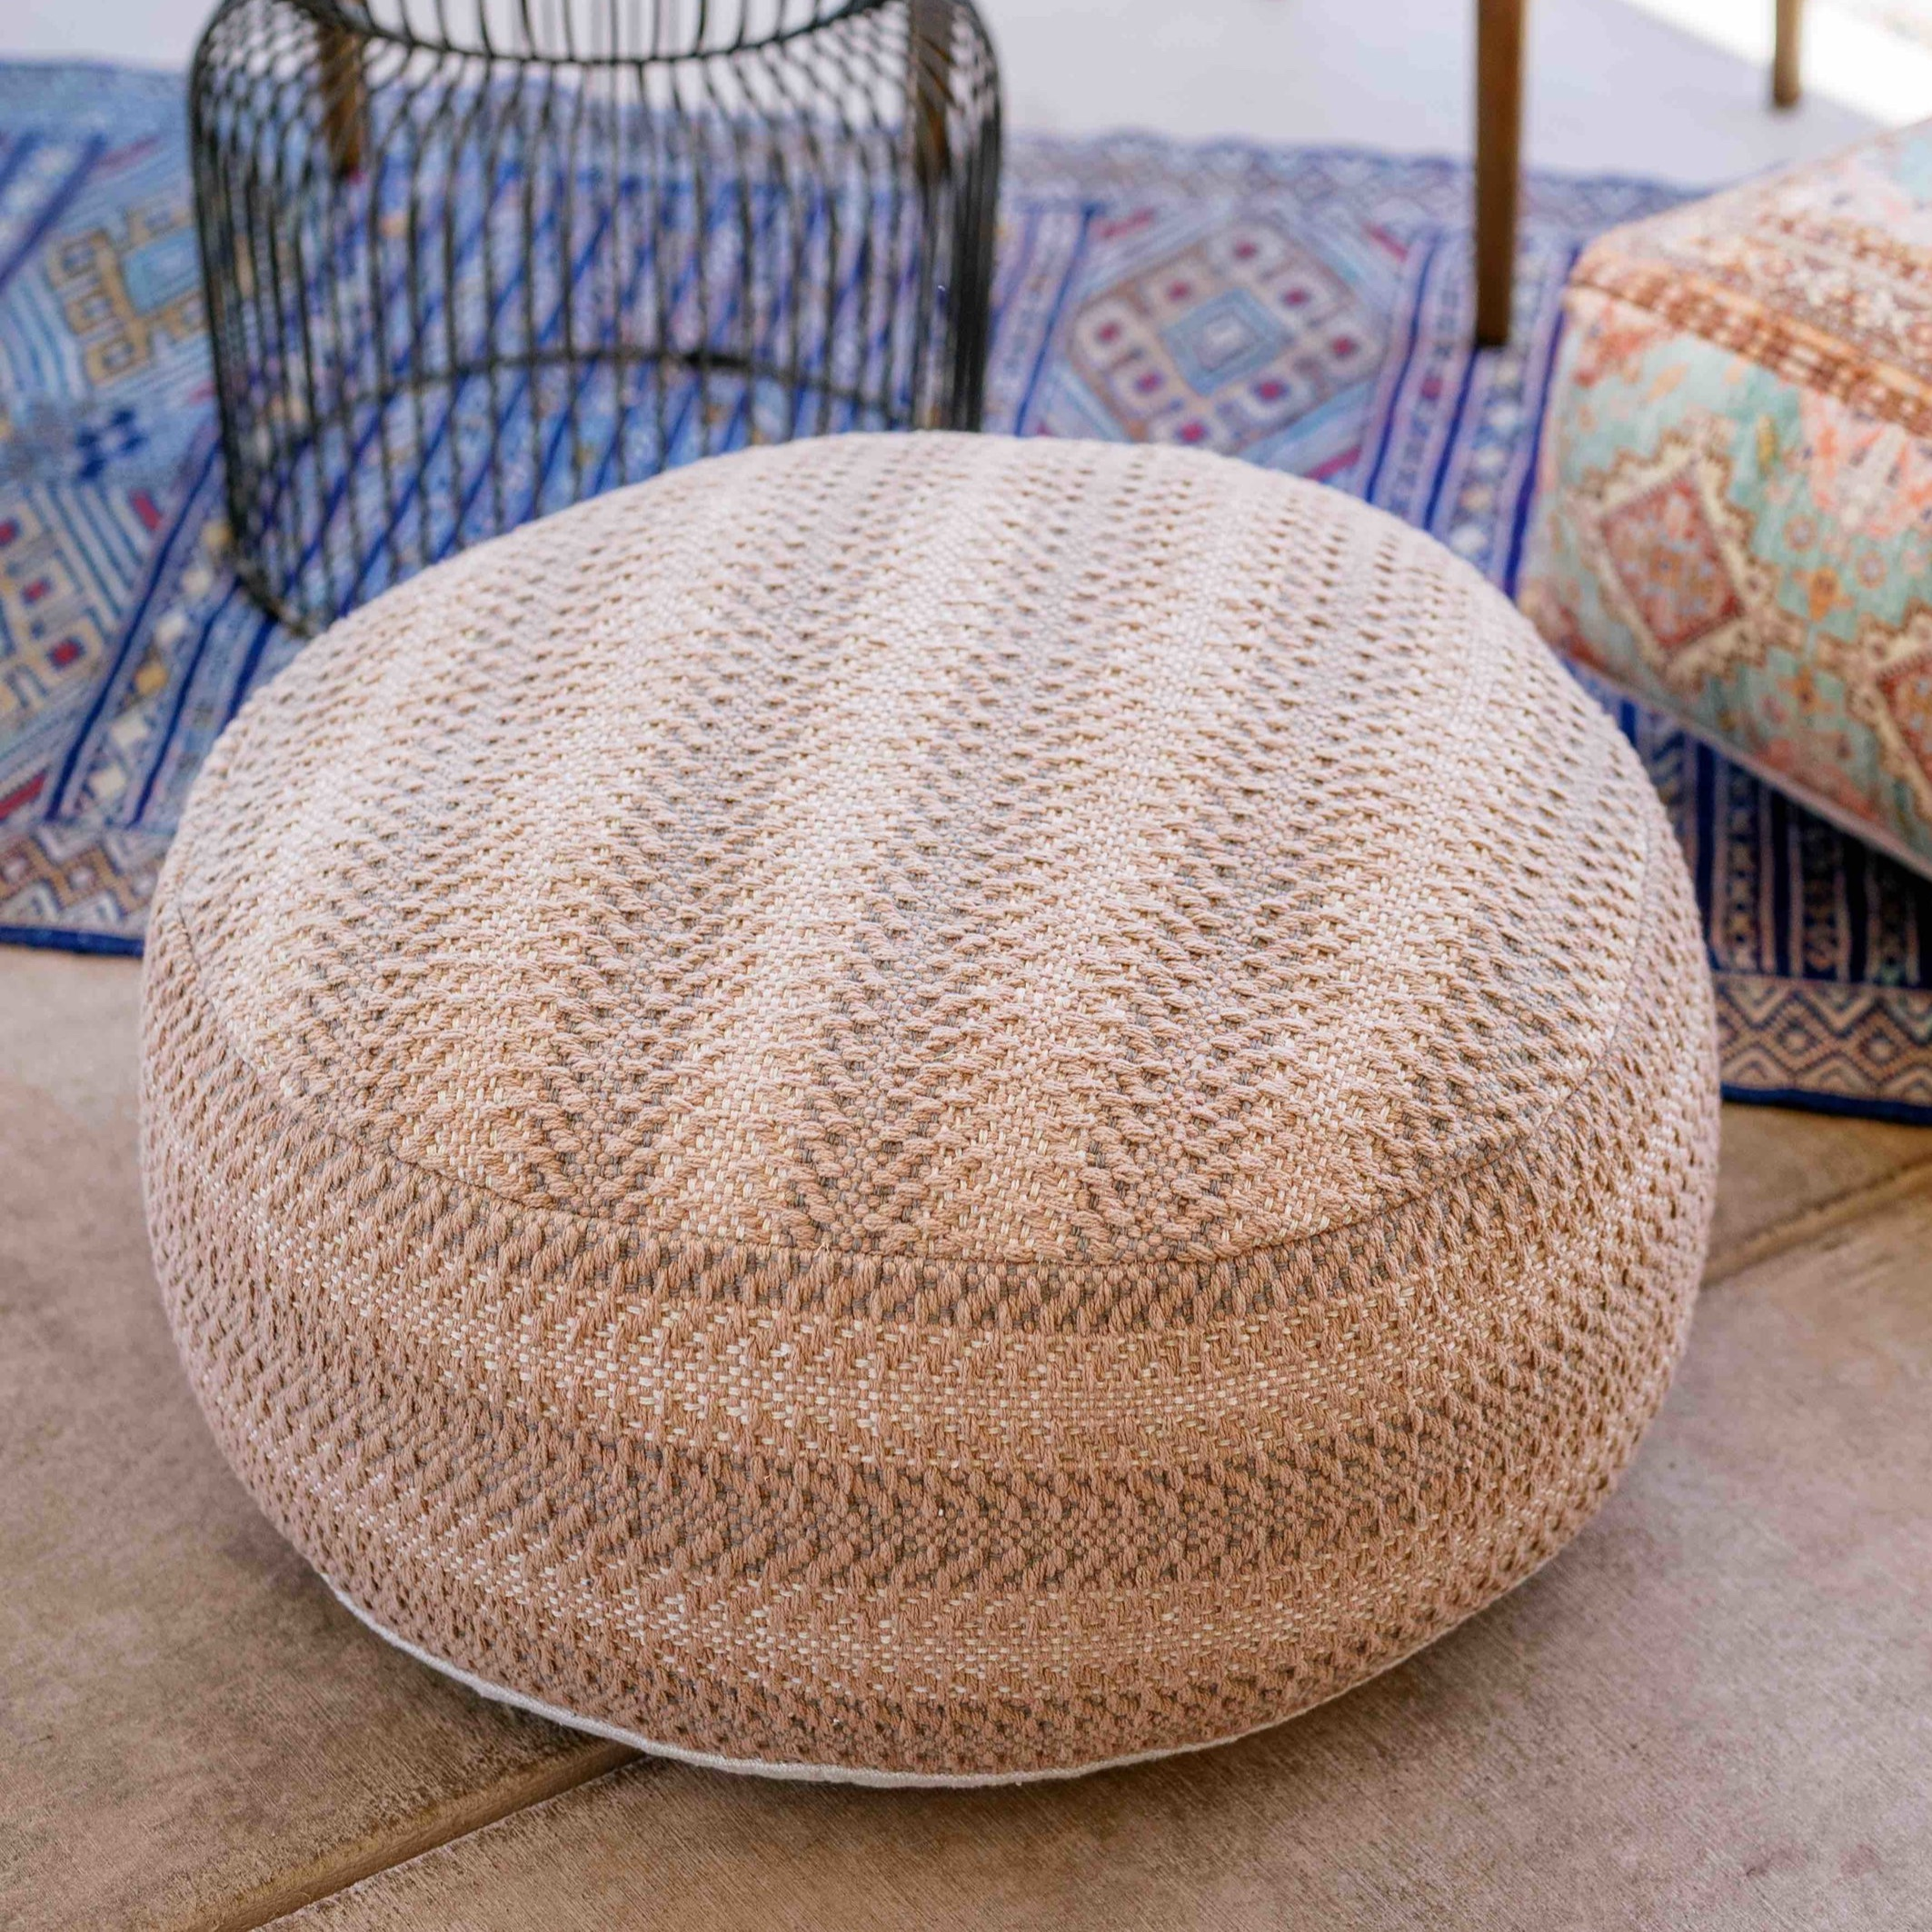 Woven Textured Pouf